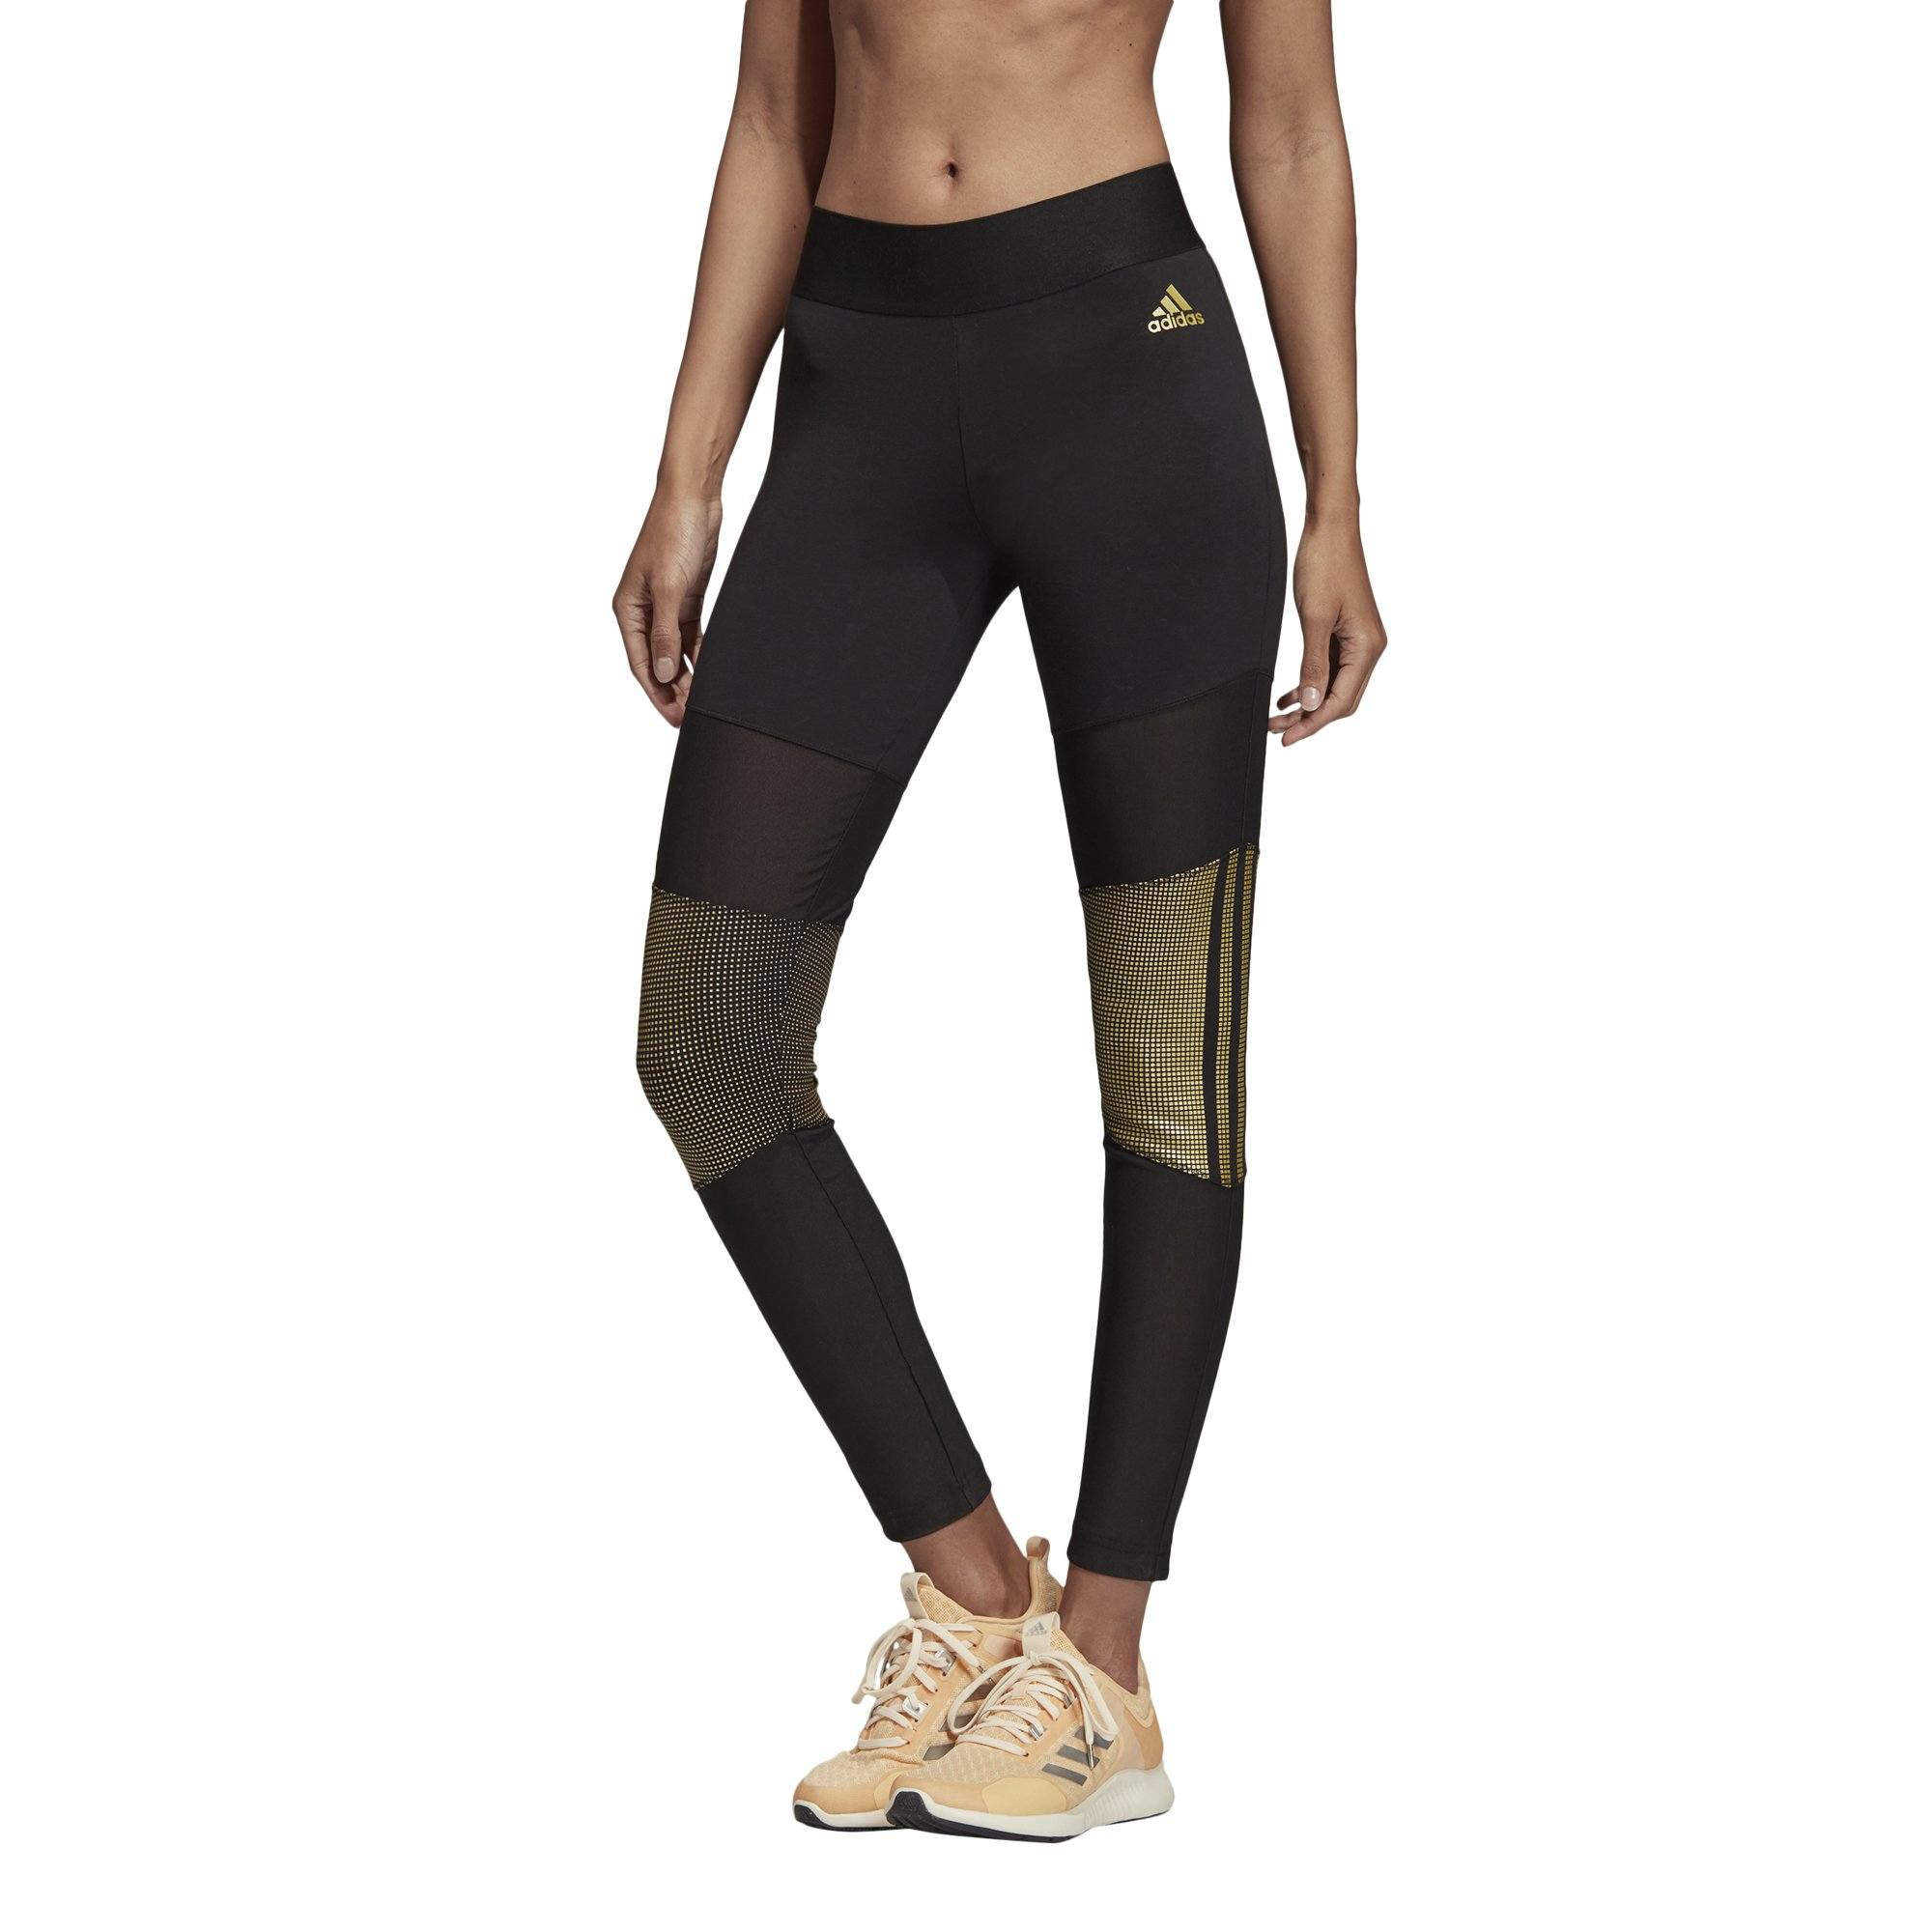 Adidas Womens ID Glam Tights - black SP-APPARELTIGHTS-WOMENS Adidas